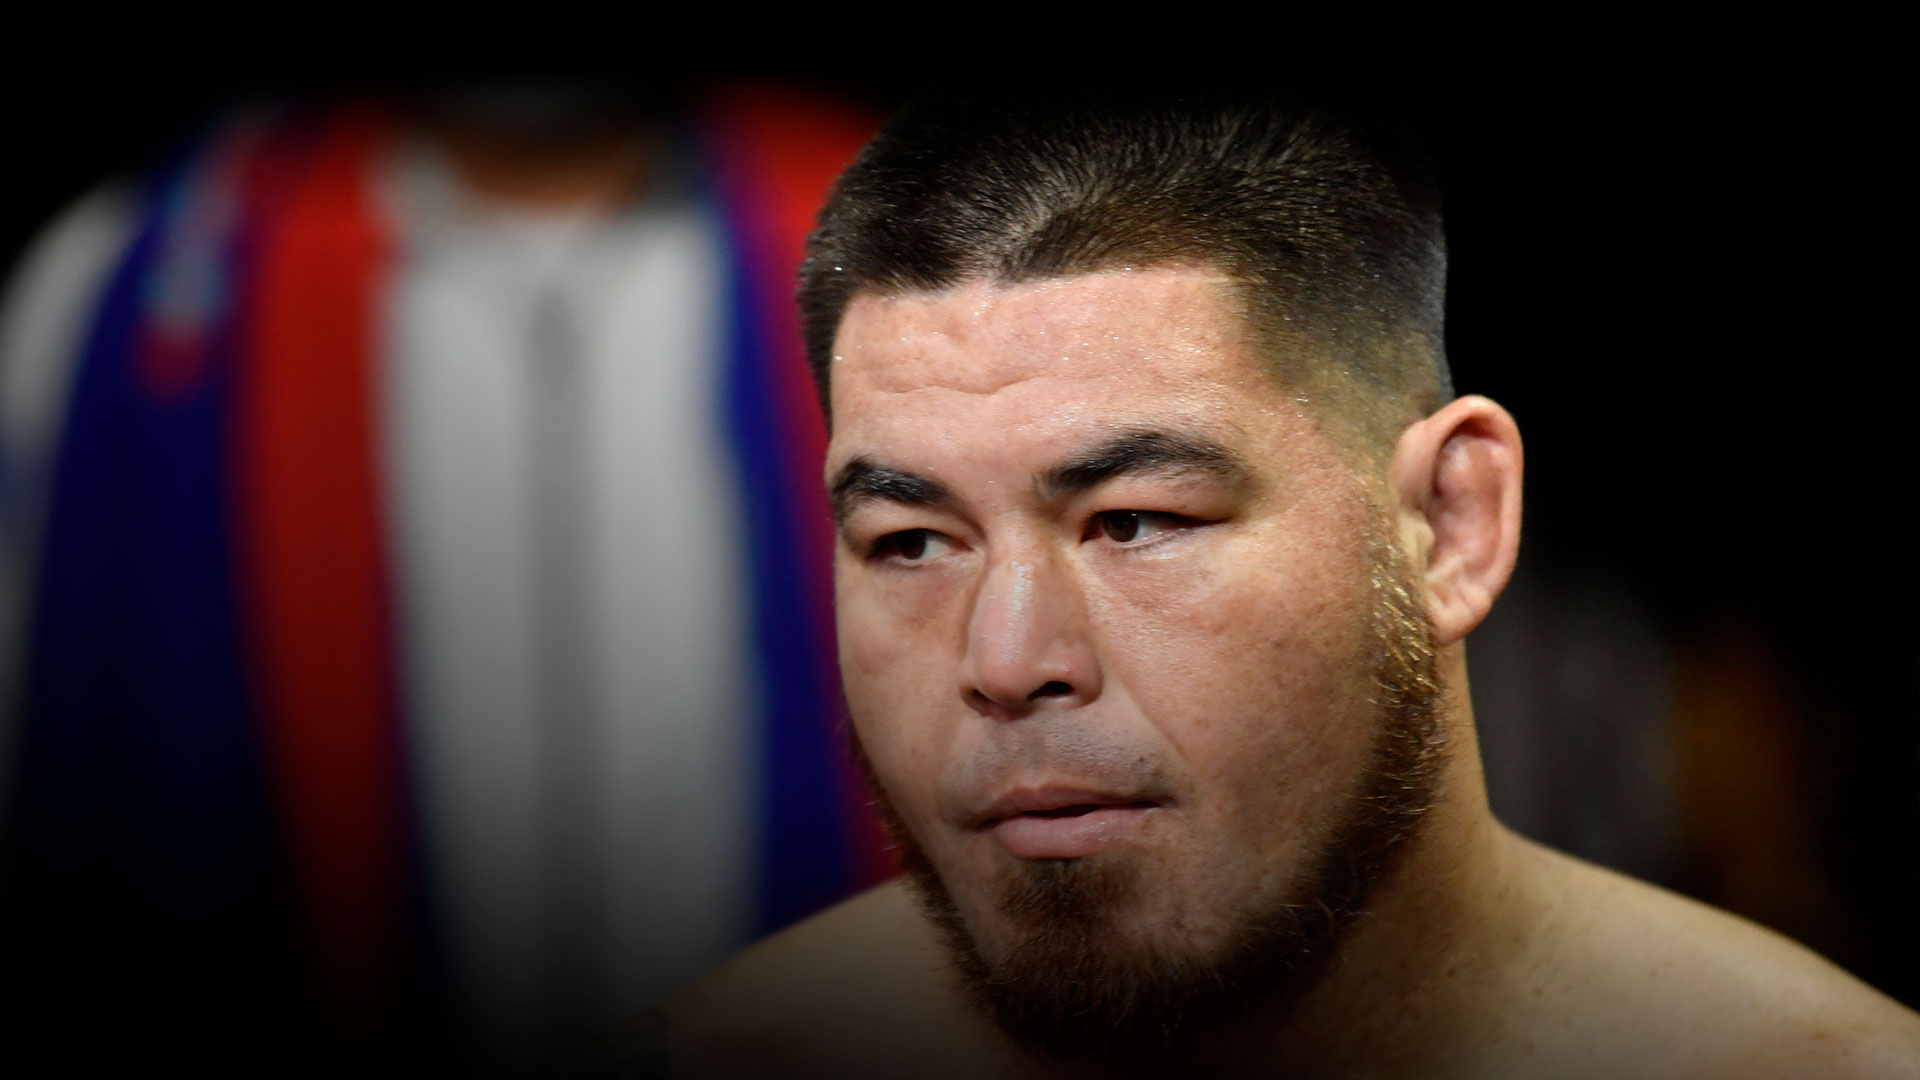 Roque Martinez of Guam prepares to fight Don'Tale Mayes in a heavyweight fight during the UFC Fight Night event at UFC APEX on November 14, 2020 in Las Vegas, Nevada. (Photo by Jeff Bottari/Zuffa LLC)